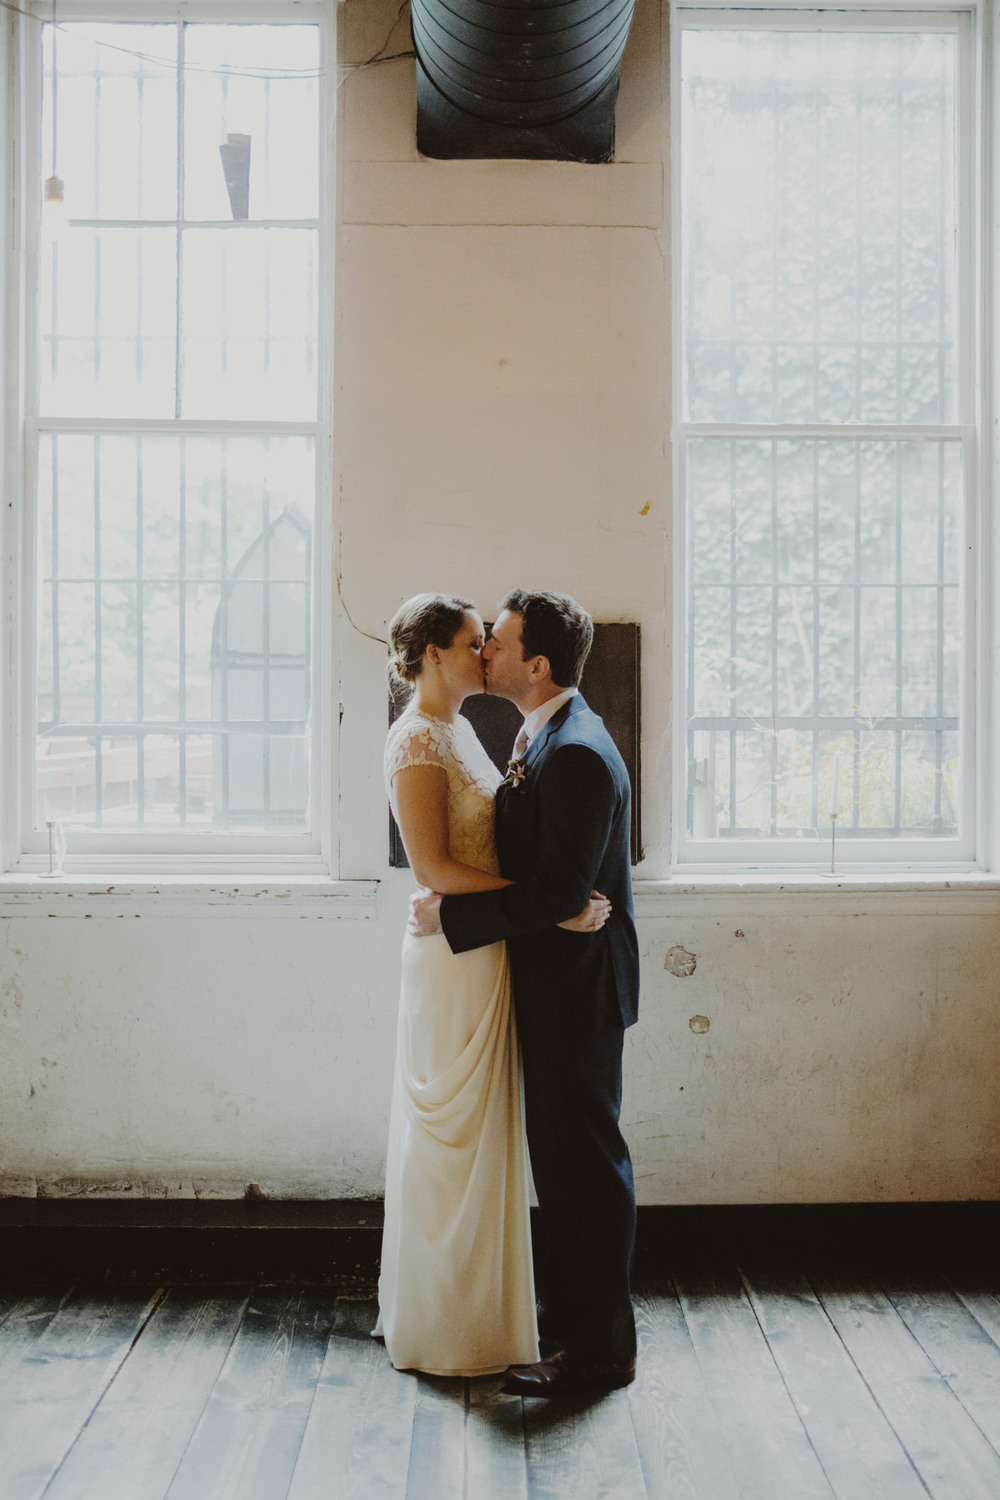 brooklyn_wedding_flatbushfarm_sammblake_010.jpg